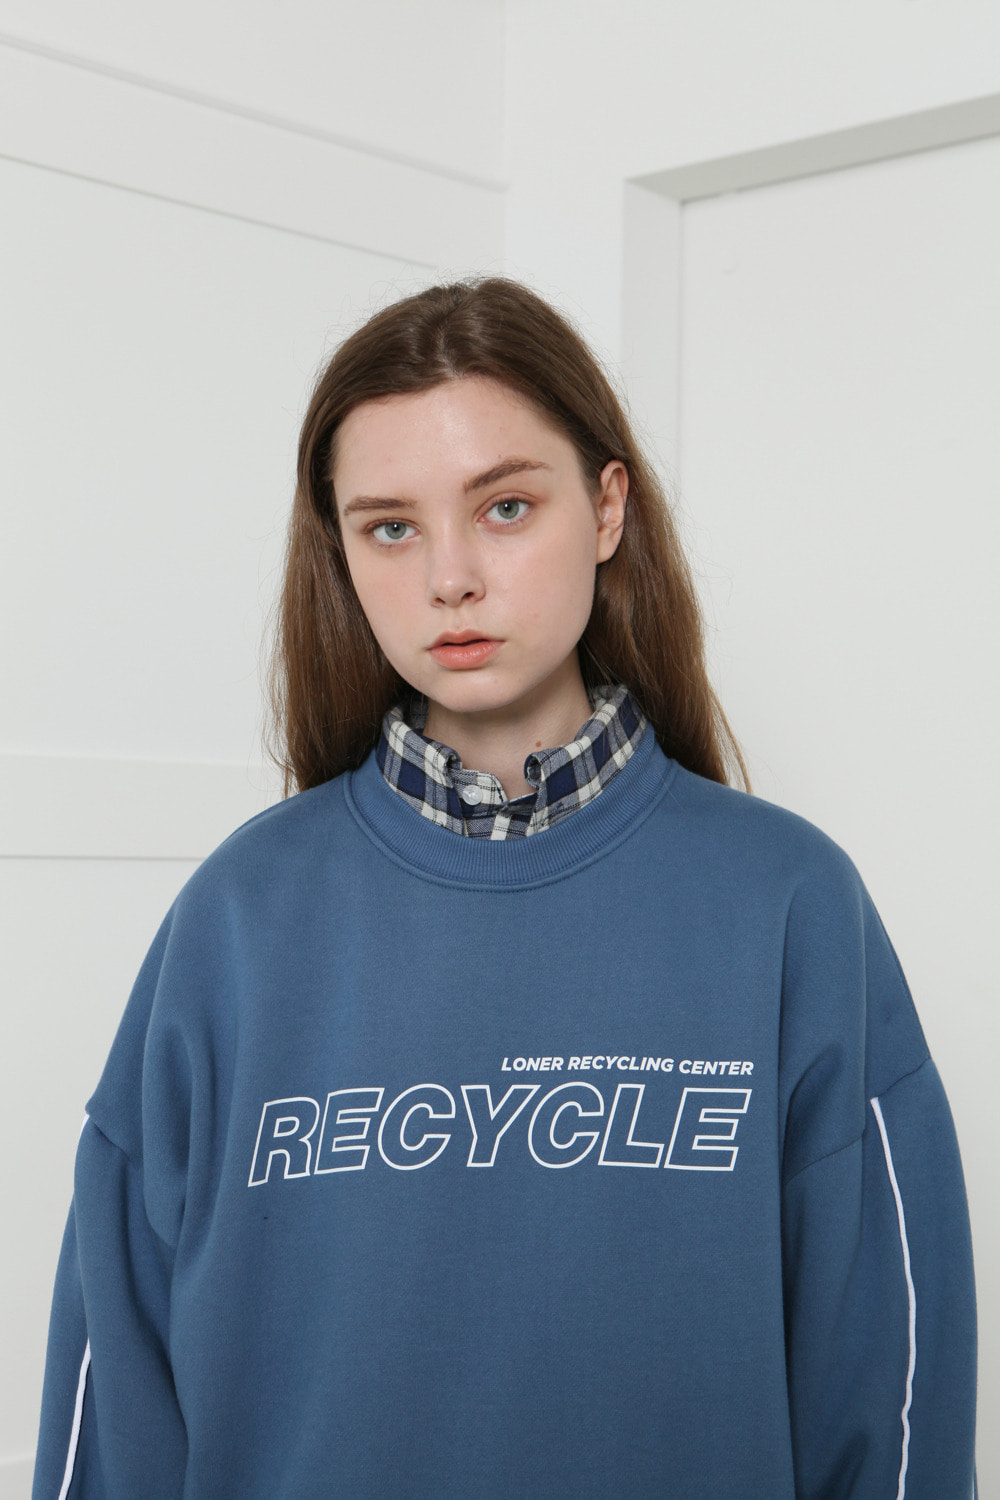 [LONER SEASON OFF SALE] Recycle center sweatshirt-dark blue (기간한정 01.17 - 01.23)